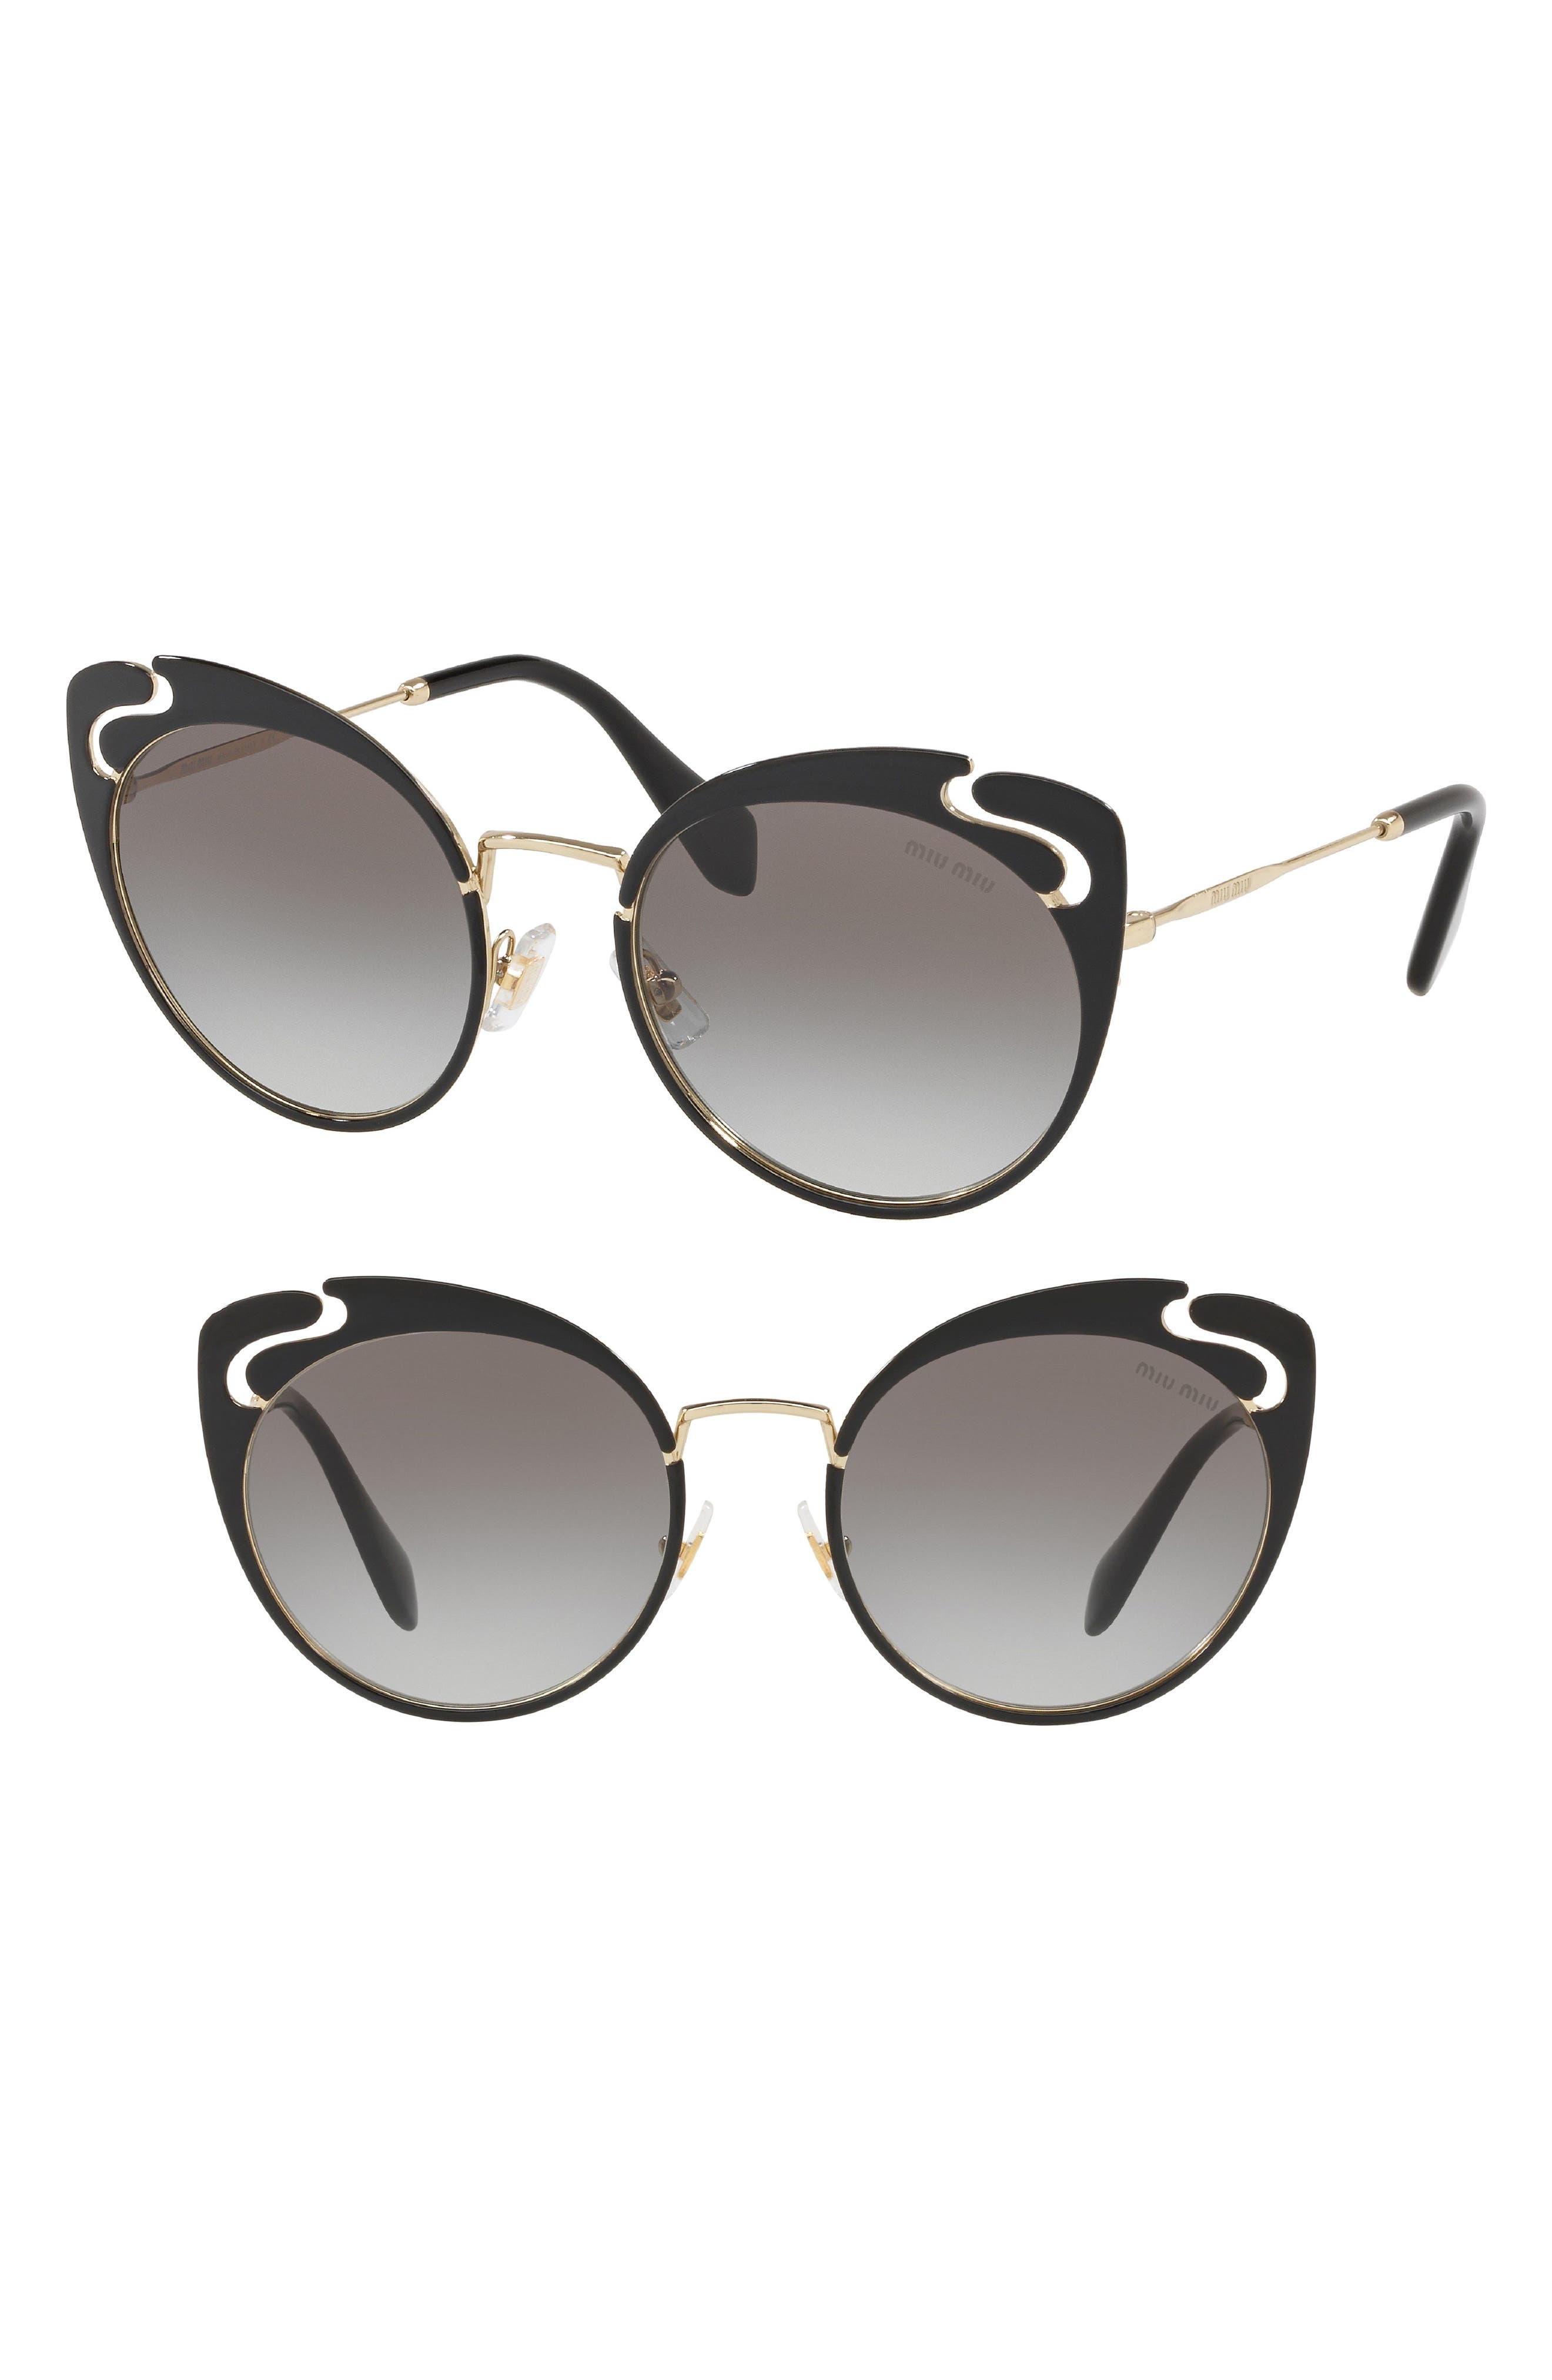 Miu Miu Noir Evolution 5m Cat Eye Sunglasses - Gold/ Black Gradient